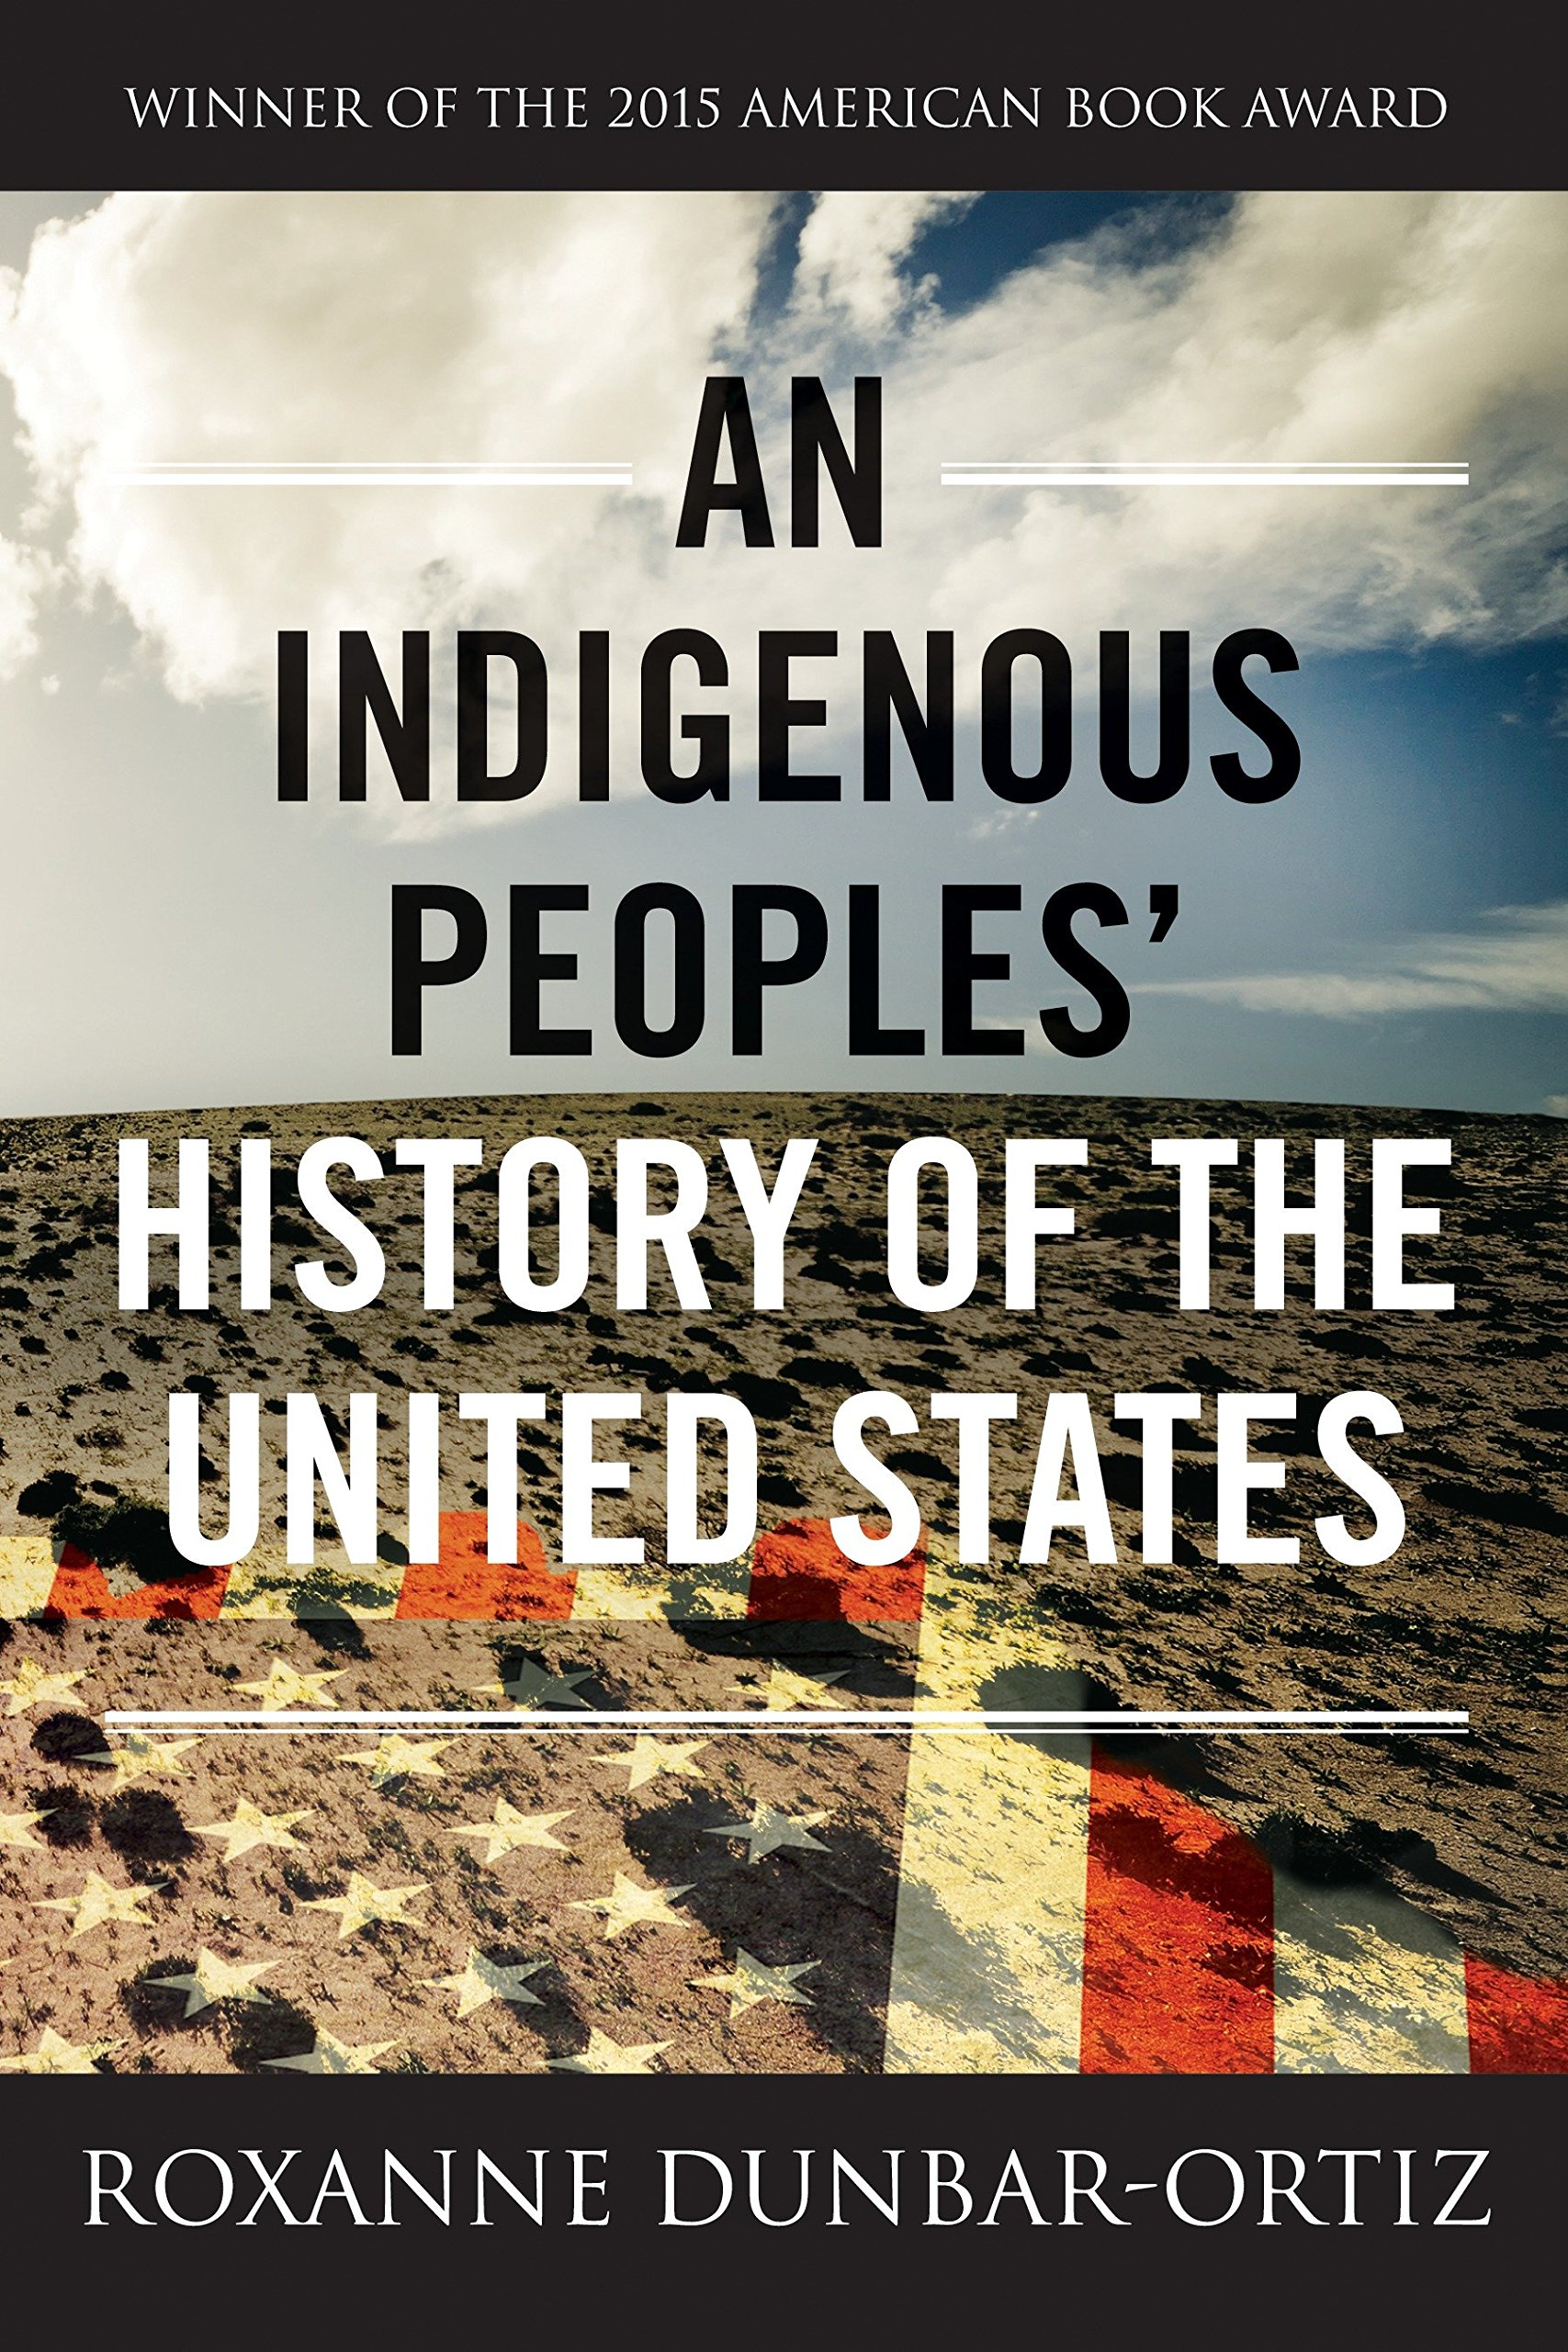 "Today in the United States, there are more than five hundred federally recognized Indigenous nations comprising nearly three million people, descendants of the fifteen million Native people who once inhabited this land. The centuries-long genocidal program of the US settler-colonial regimen has largely been omitted from history. Now, for the first time, acclaimed historian and activist Roxanne Dunbar-Ortiz offers a history of the United States told from the perspective of Indigenous peoples and reveals  how Native Americans, for centuries, actively resisted expansion of the US empire.  In  An Indigenous Peoples' History of the United States , Dunbar-Ortiz adroitly challenges the founding myth of the United States and shows how policy against the Indigenous peoples was colonialist and designed to seize the territories of the original inhabitants, displacing or eliminating them. And as Dunbar-Ortiz reveals, this policy was praised in popular culture, through writers like James Fenimore Cooper and Walt Whitman, and in the highest offices of government and the military. Shockingly, as the genocidal policy reached its zenith under President Andrew Jackson, its ruthlessness was best articulated by US Army general Thomas S. Jesup, who, in 1836, wrote of the Seminoles: ""The country can be rid of them only by exterminating them.""    Spanning more than four hundred years, this classic bottom-up peoples' history radically reframes US history and explodes the silences that have haunted our national narrative."